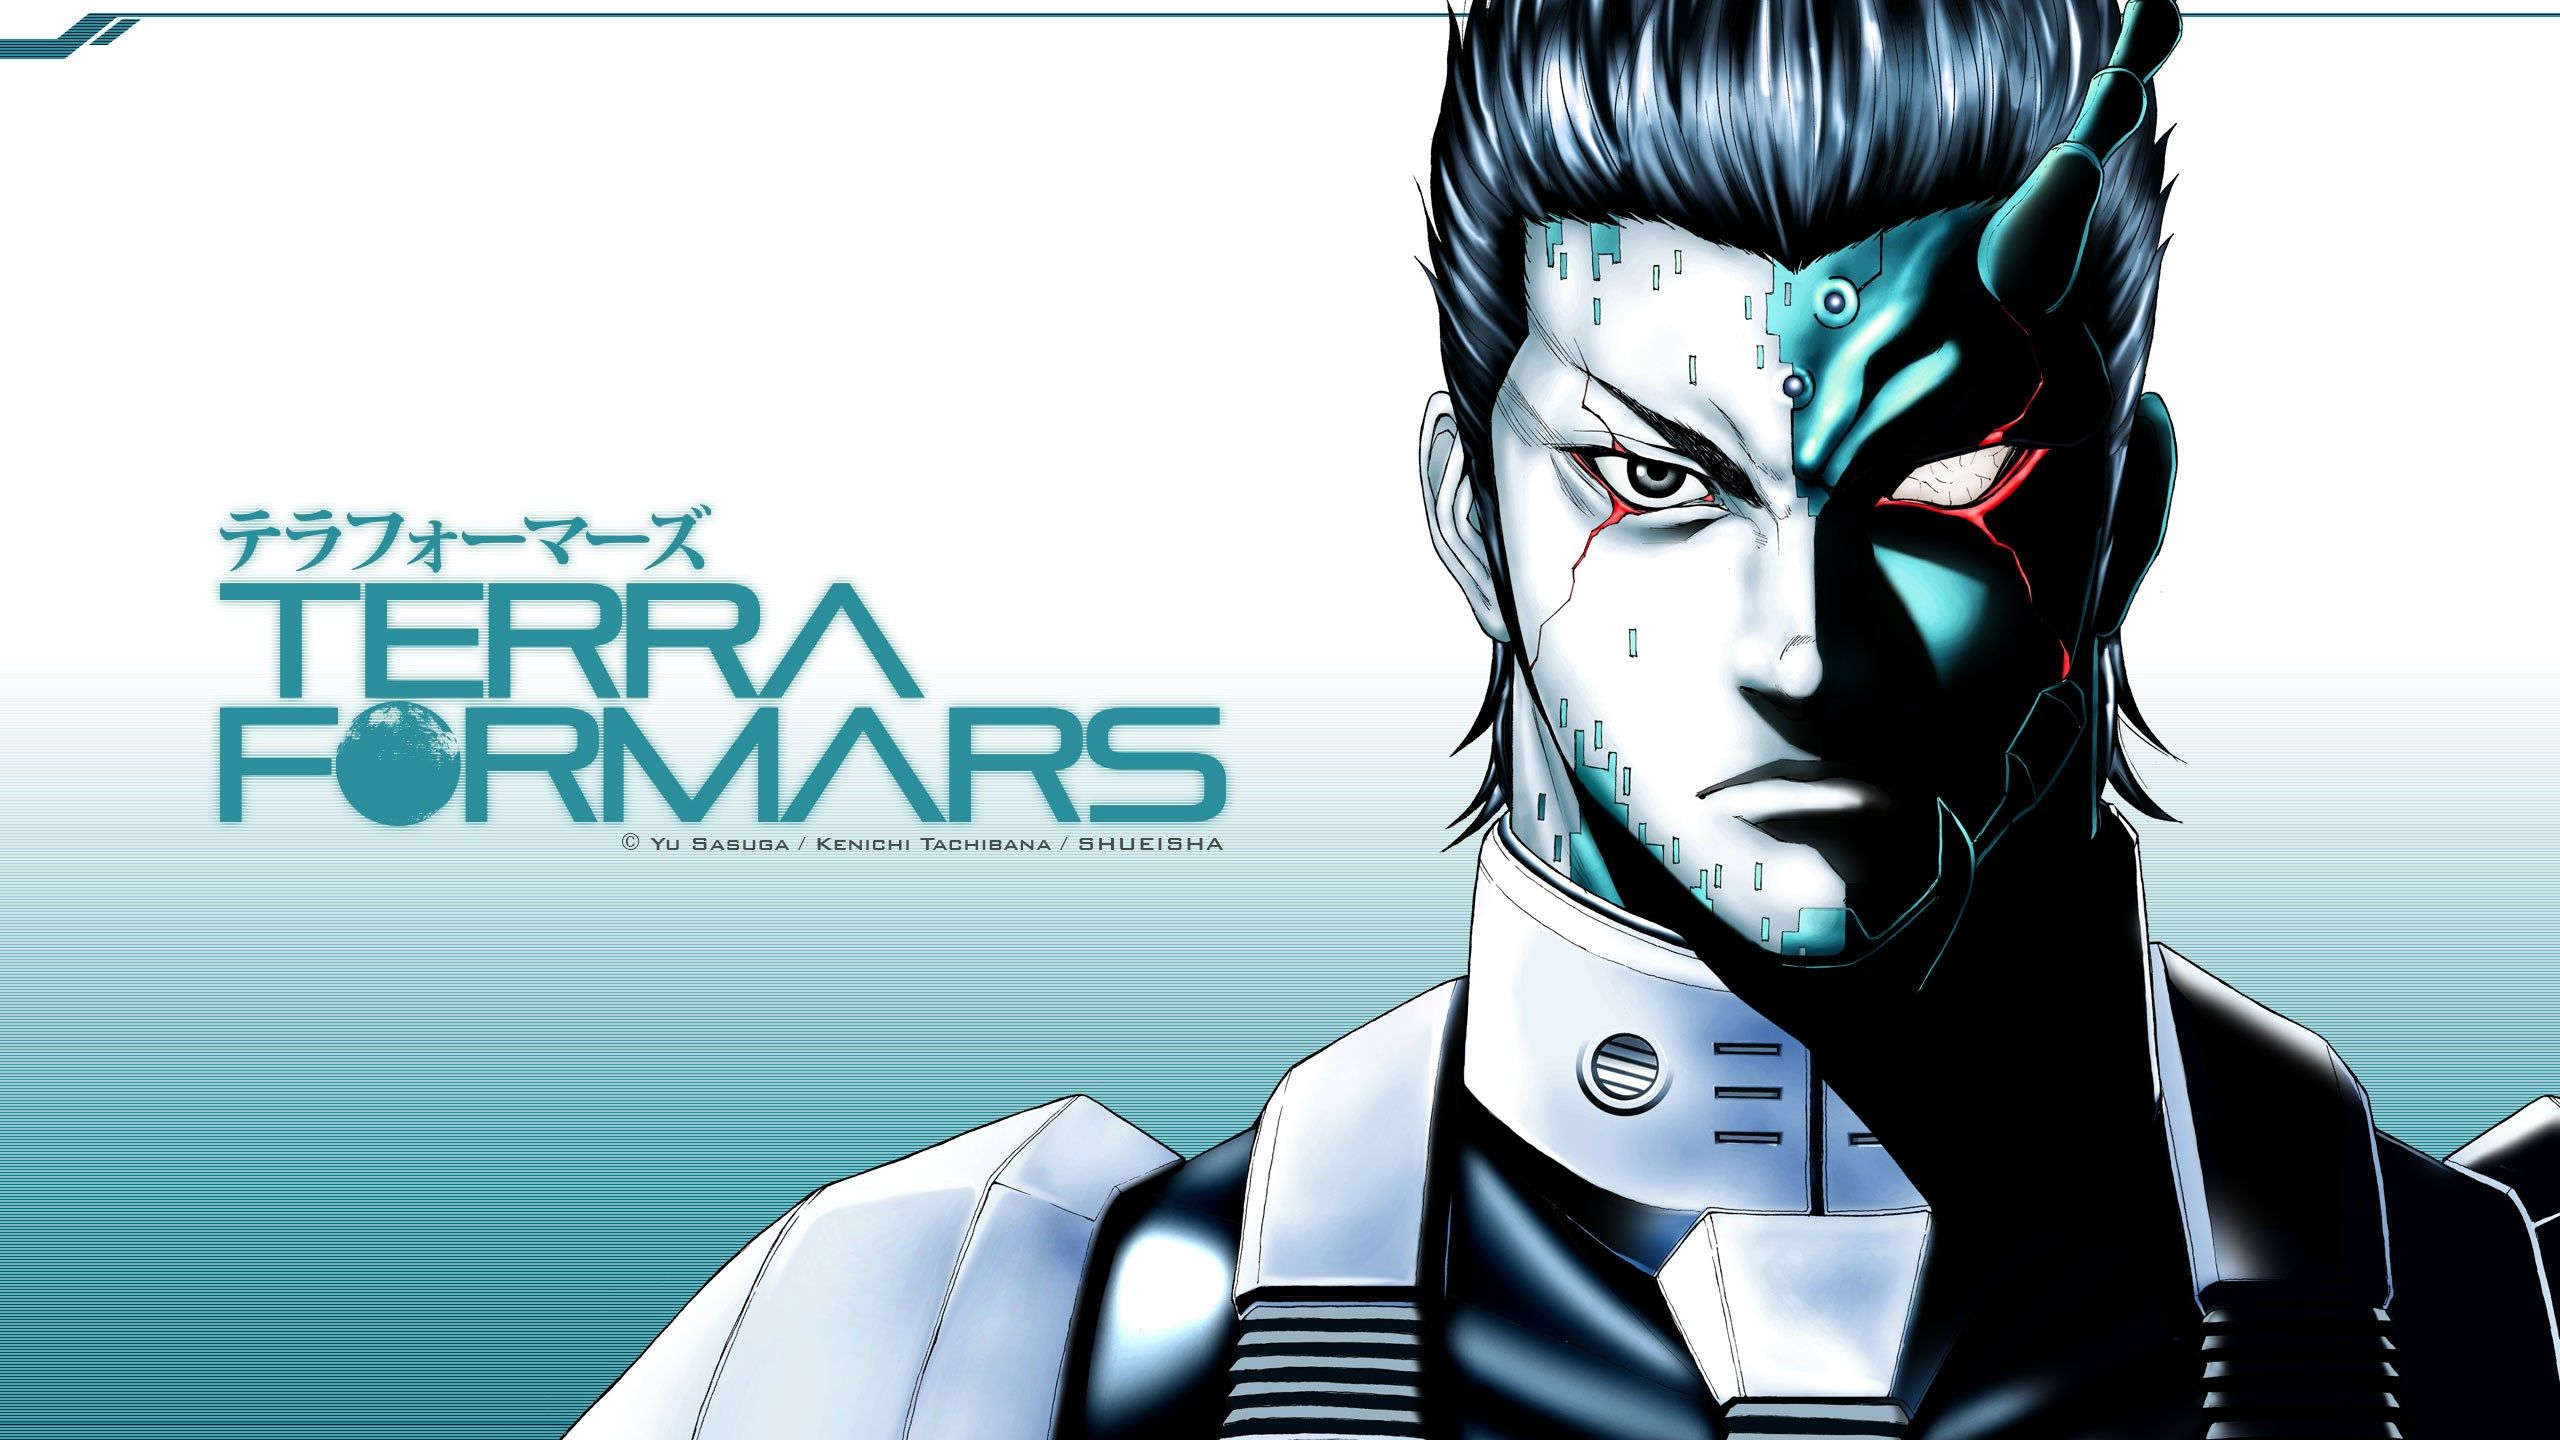 2560x1440 Px Computer Wallpaper For Terra Formars By Dyer Bush For